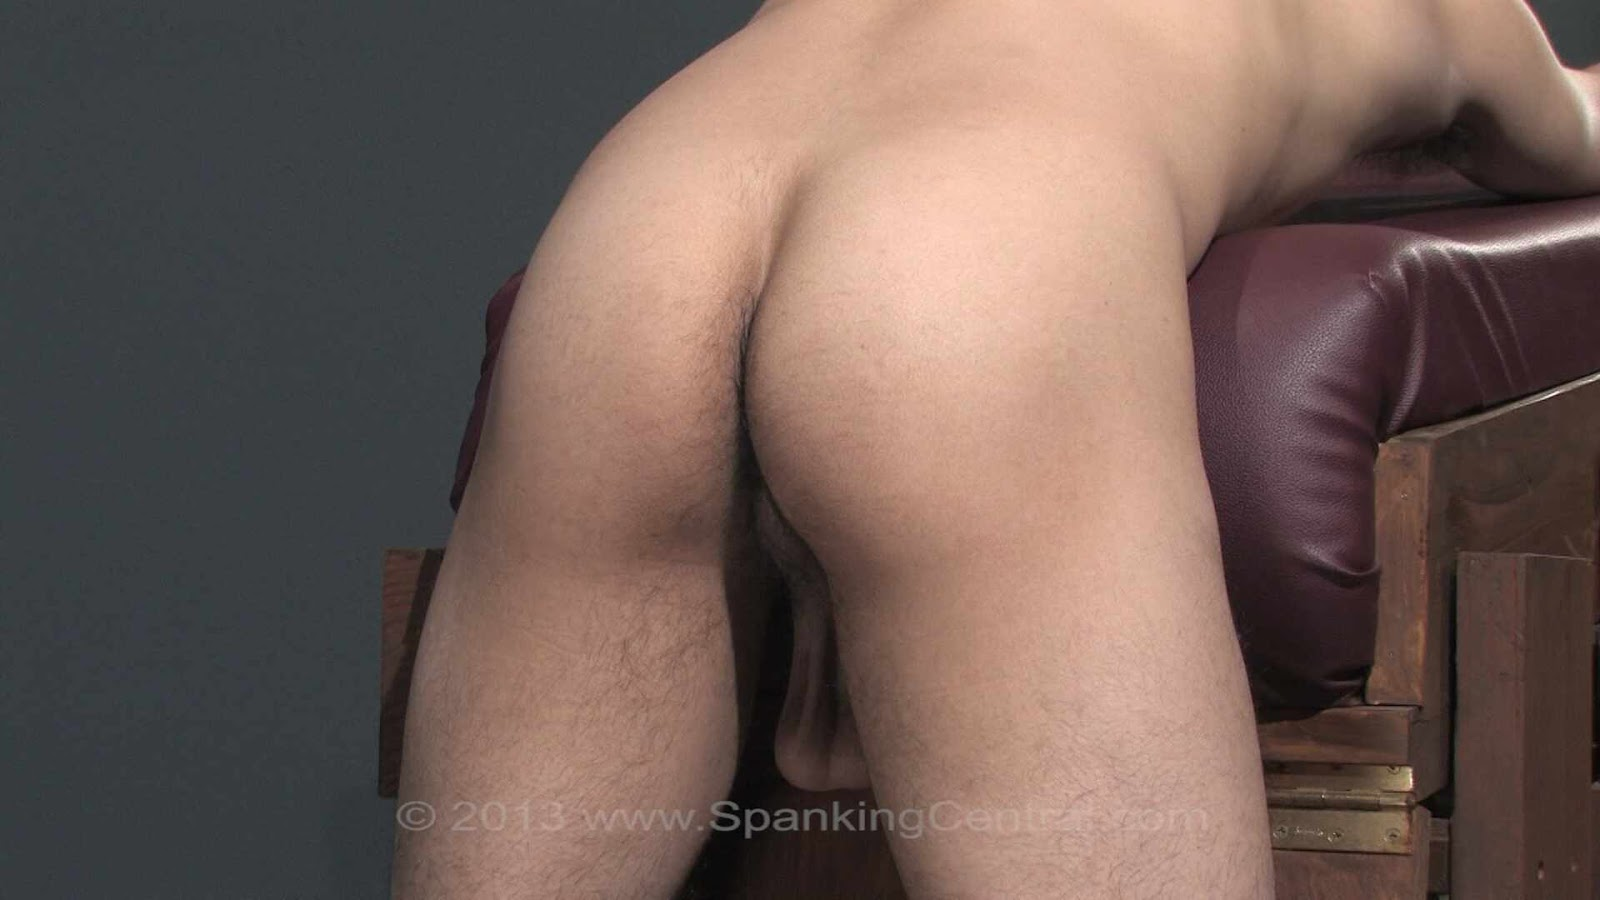 Agree, male spank central topic